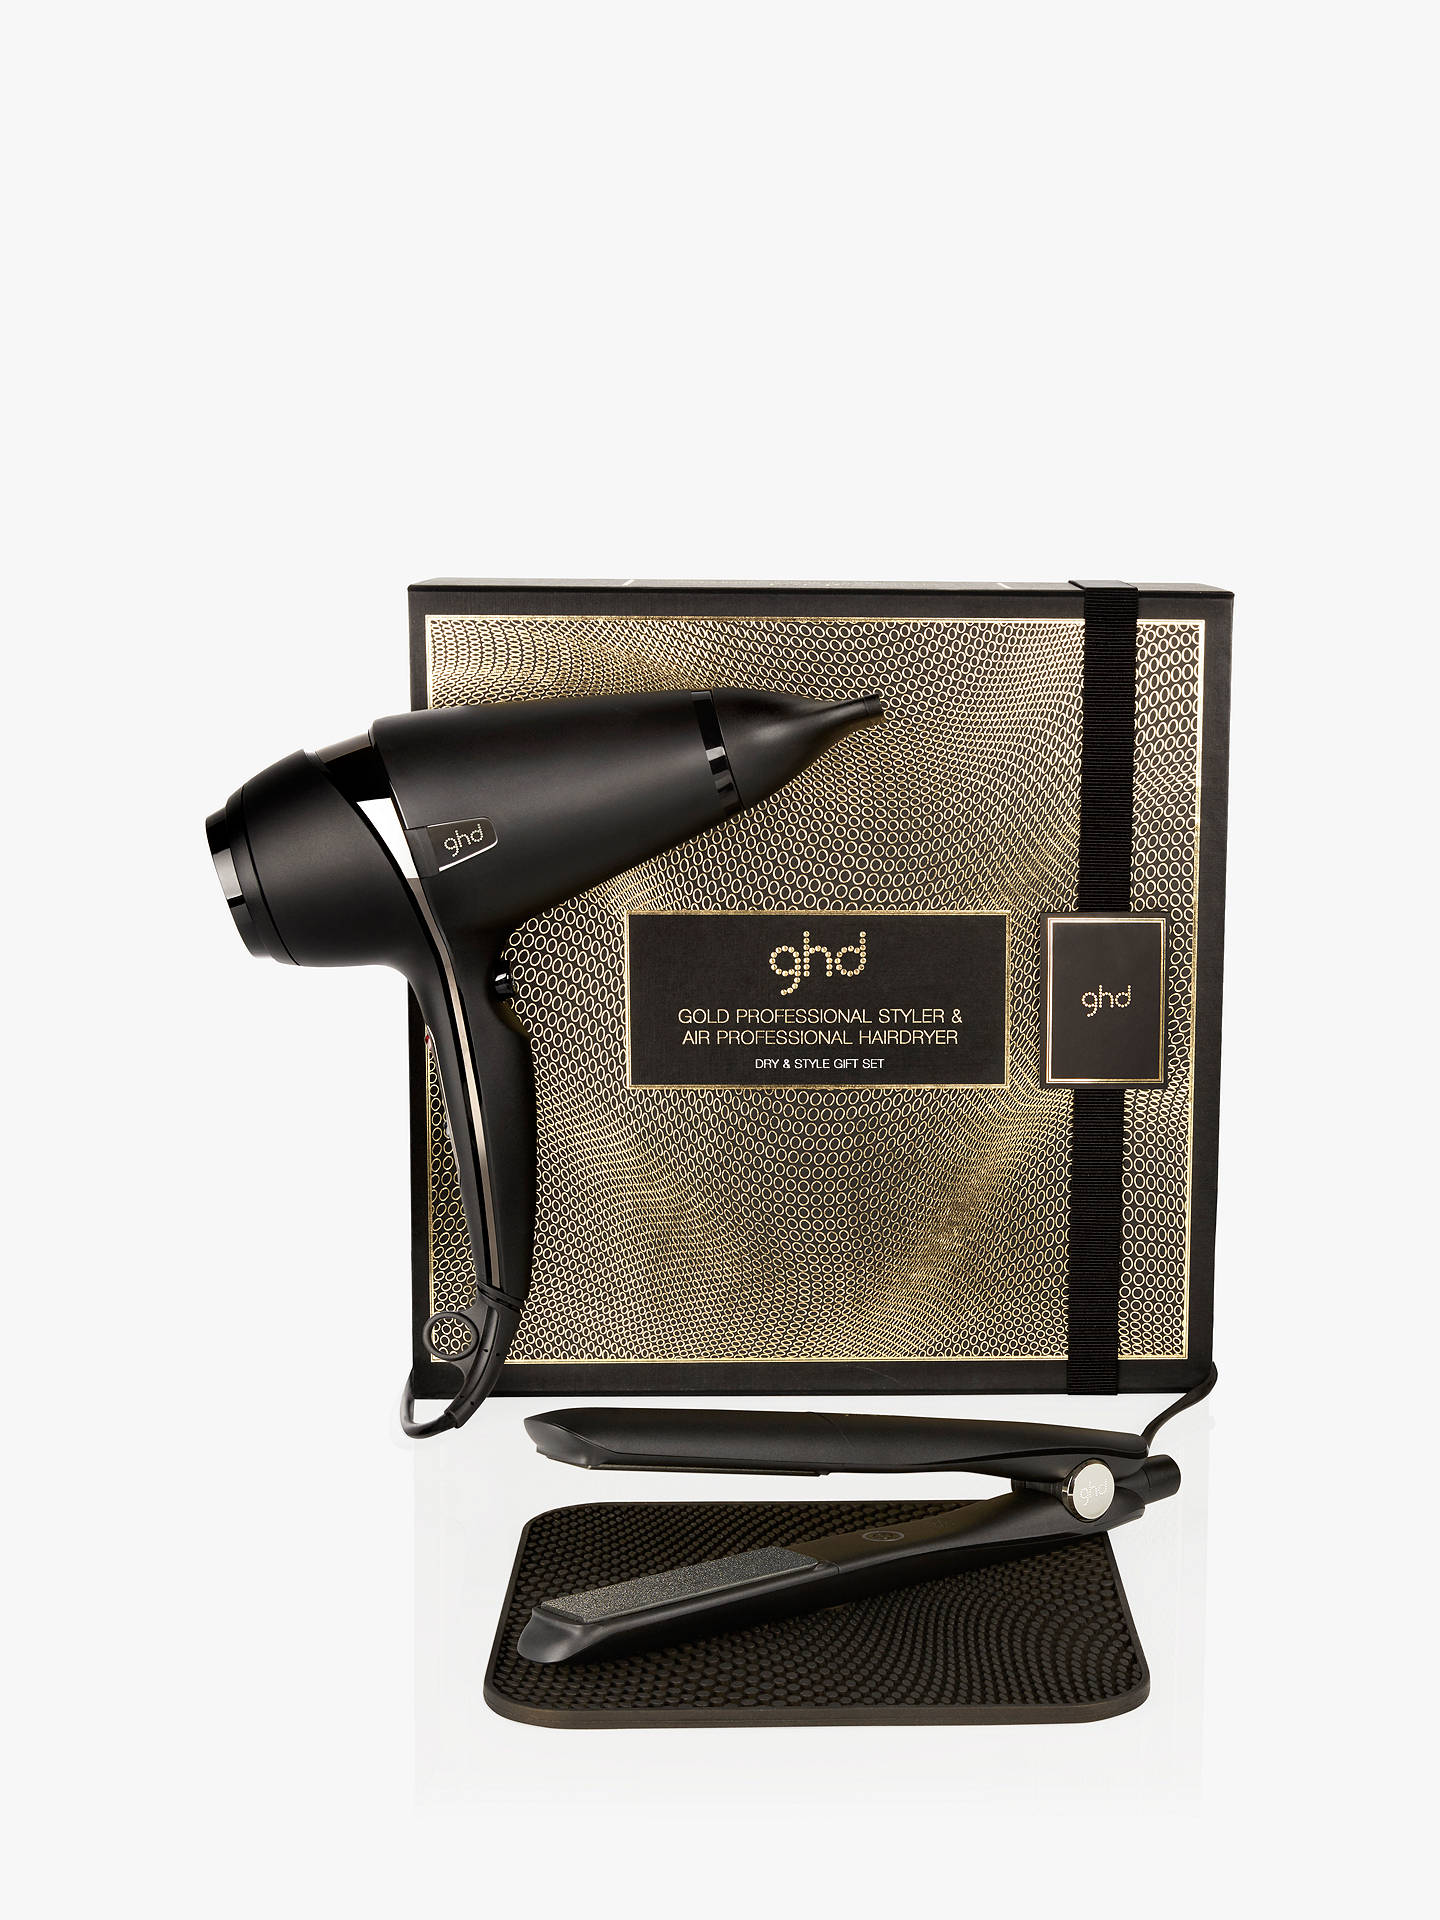 ghd Dry & Style Gift Set with ghd Gold